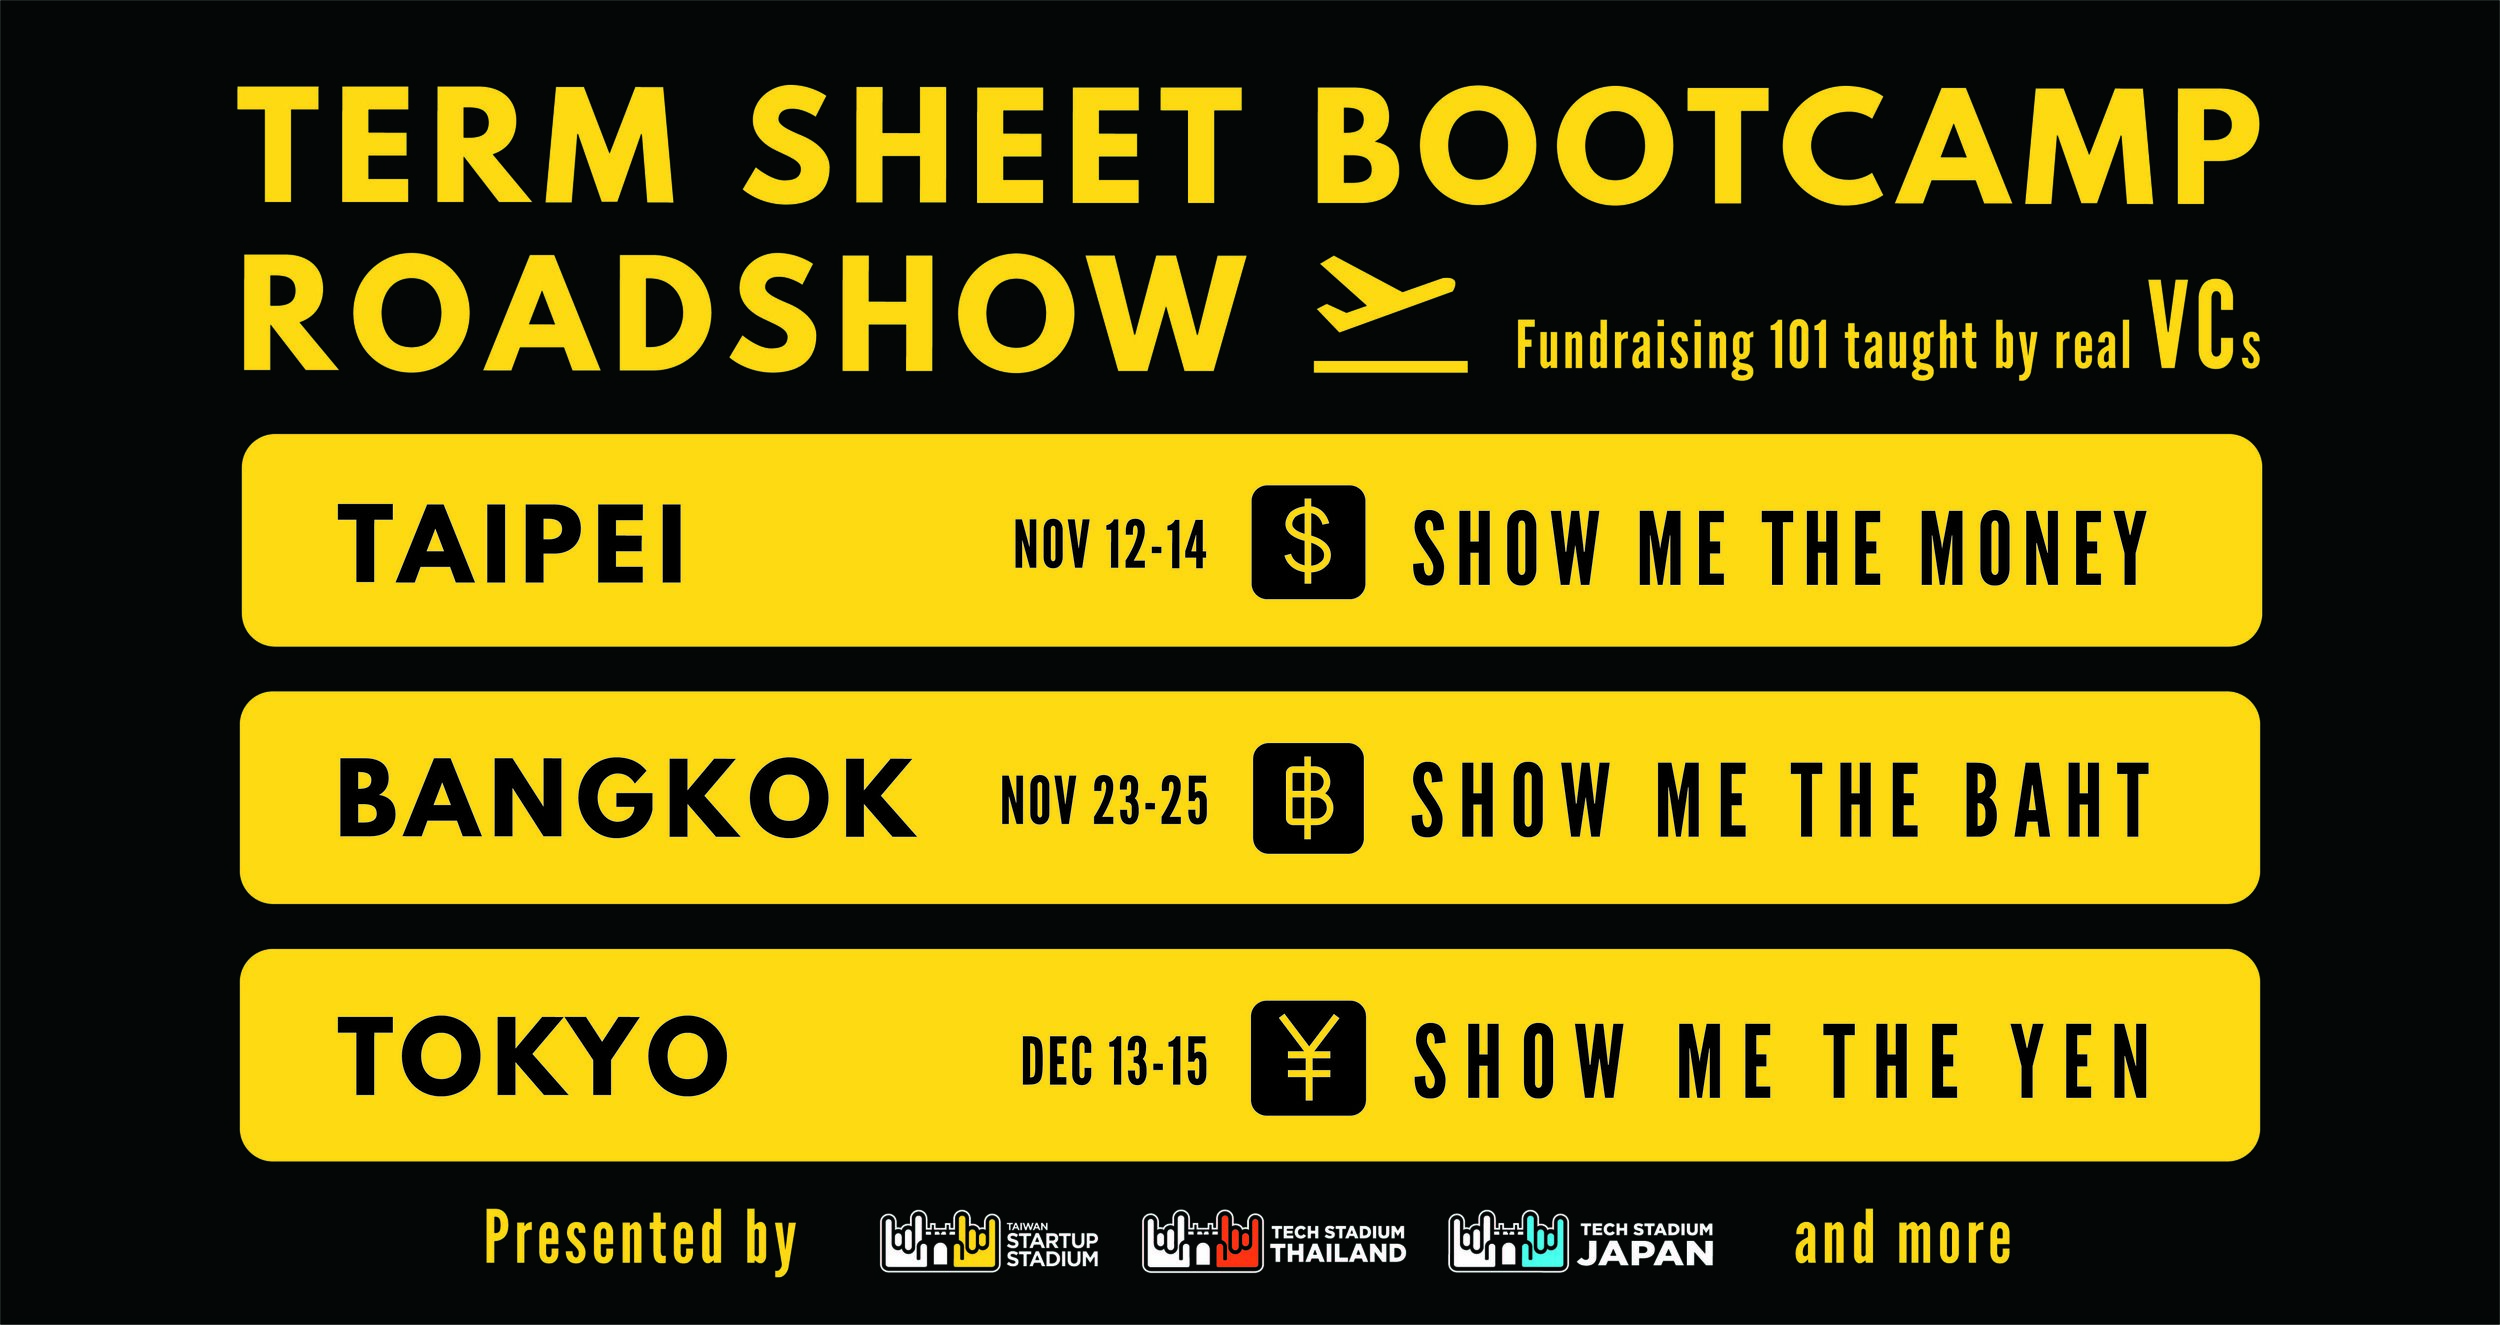 2018 Term Sheet Bootcamp Roadshow Key Visual_工作區域 1.jpg